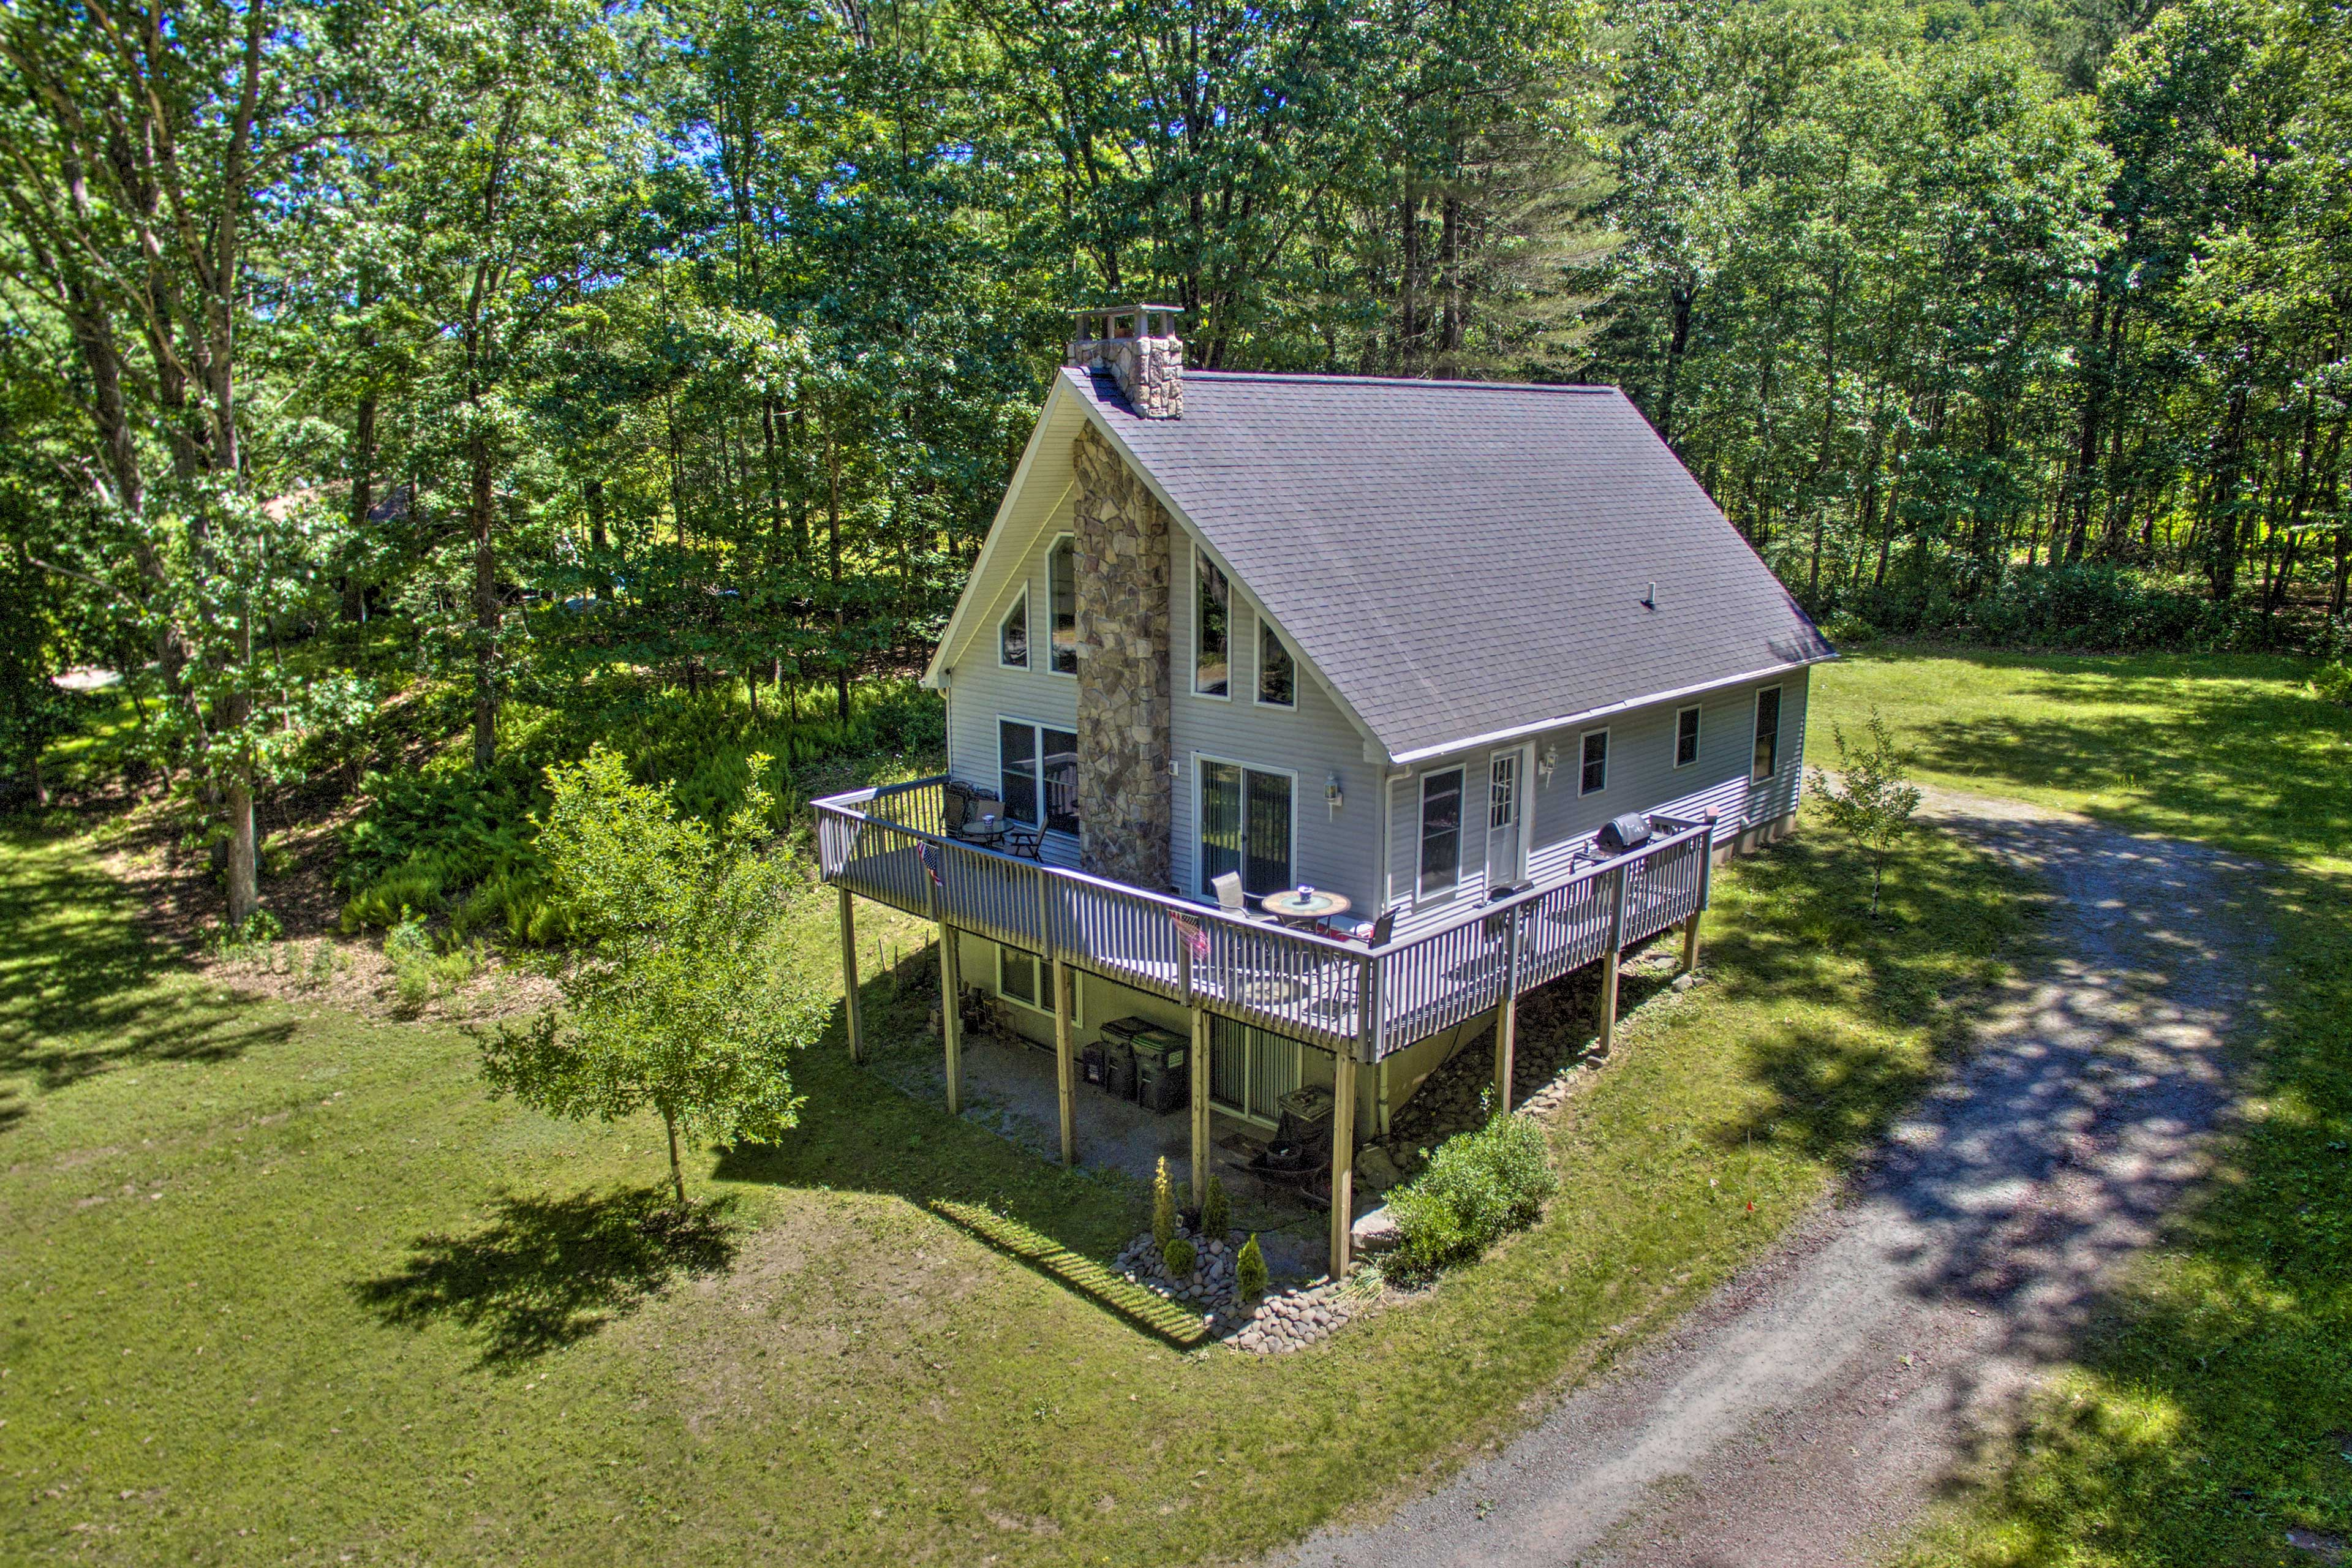 Callicoon Vacation Rental   3-Story Home   2BR   1BA   1,536 Sq Ft